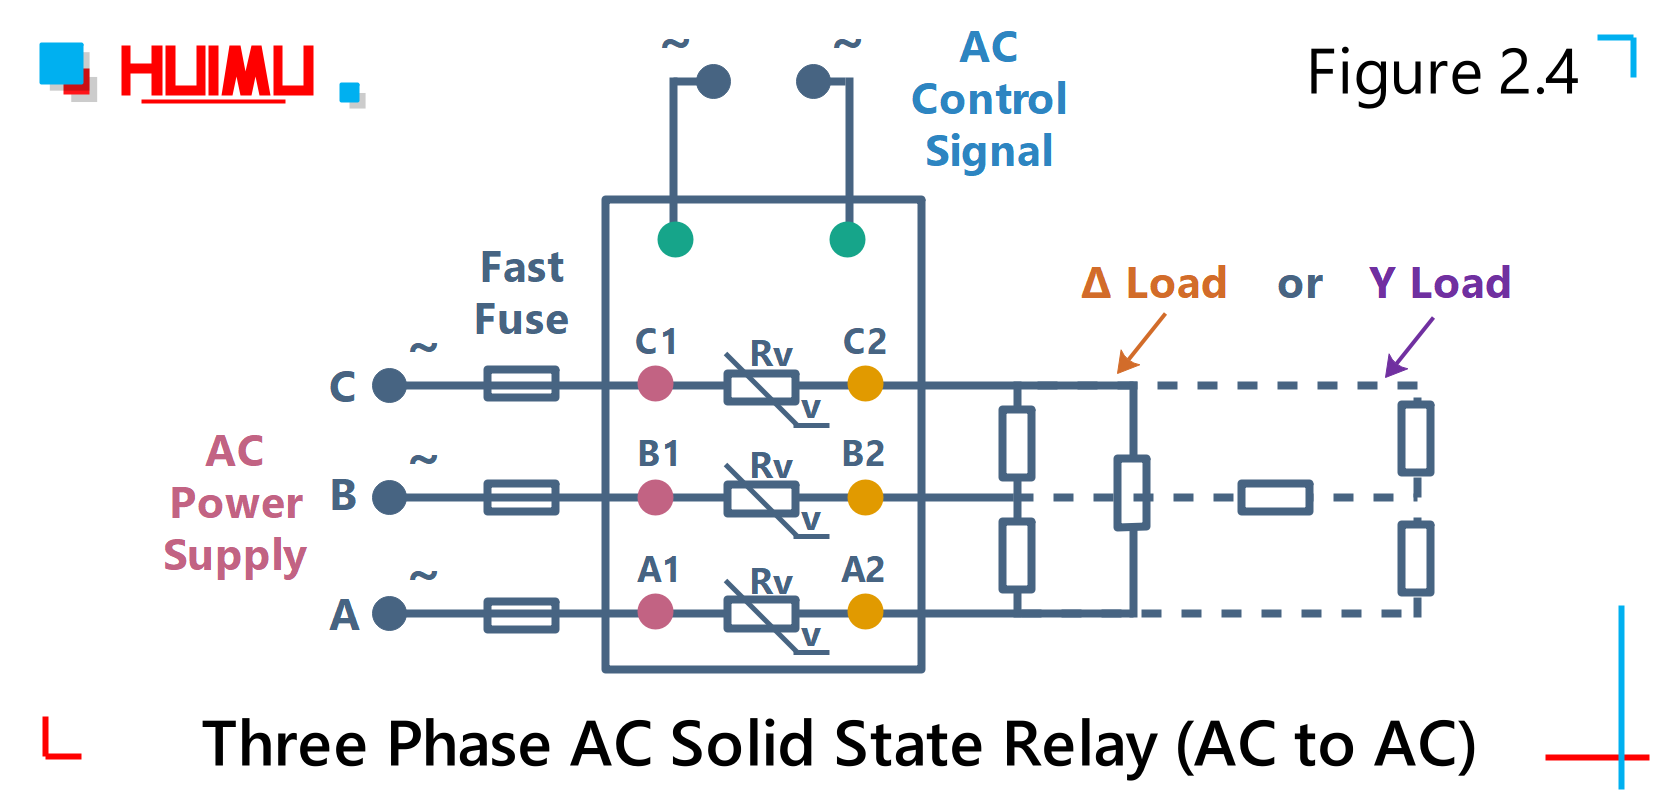 three phase AC solid state relay (AC to AC) wiring diagram and circuit diagram